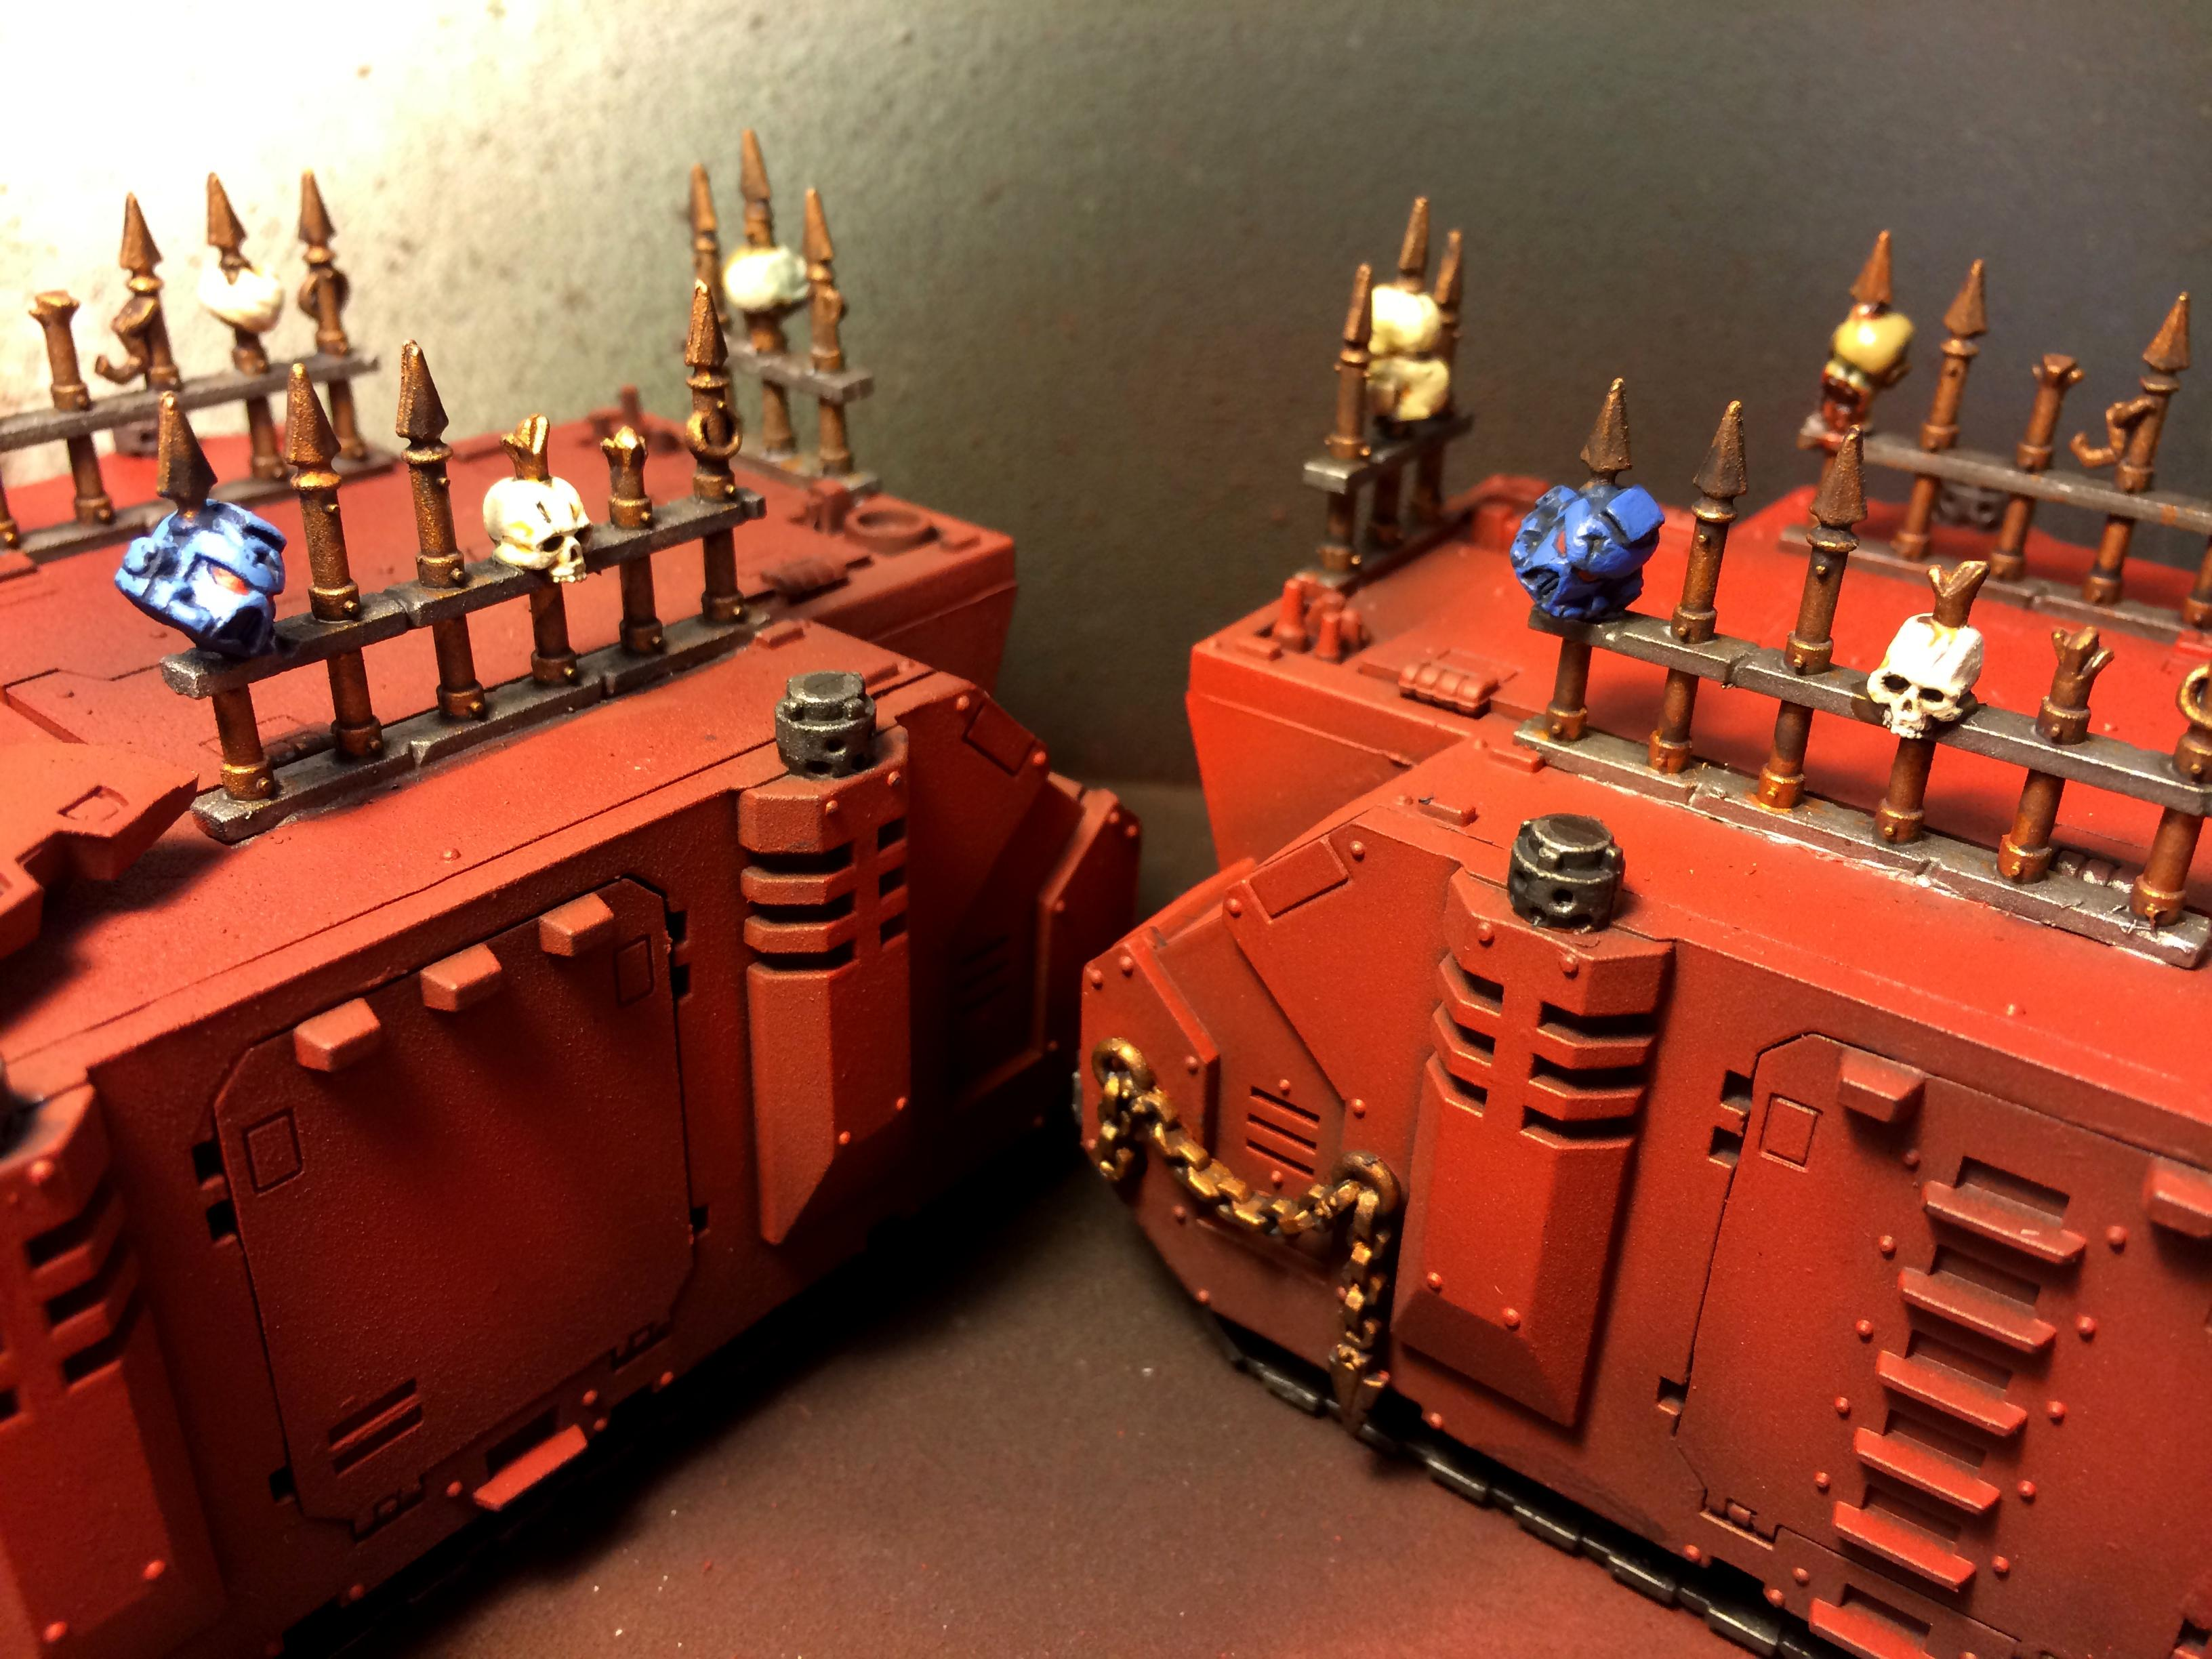 Airbrush, Blood, Chaos, Commission, Red, Rhino, Skull, The Reactor Core, Vardenv2, World Eaters